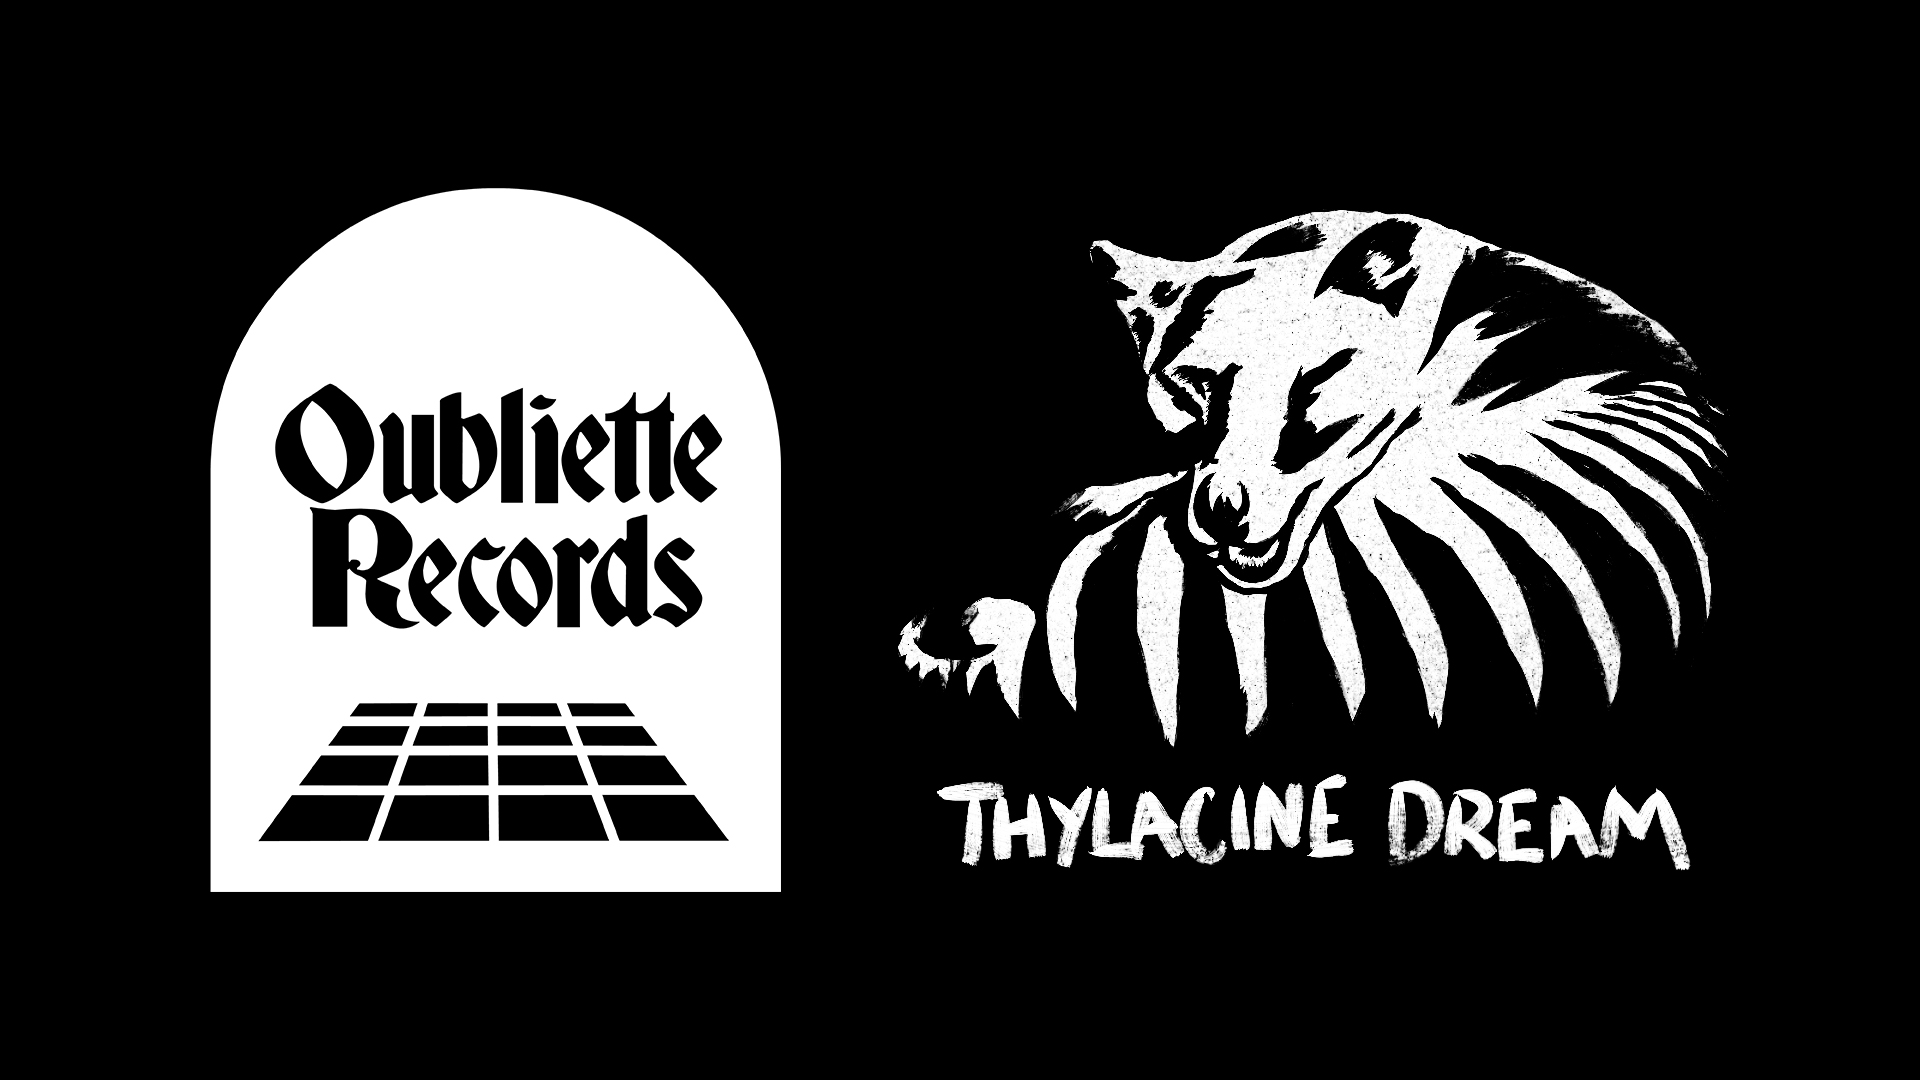 Oubliette-Records-+-Thylacine-Dream.jpg